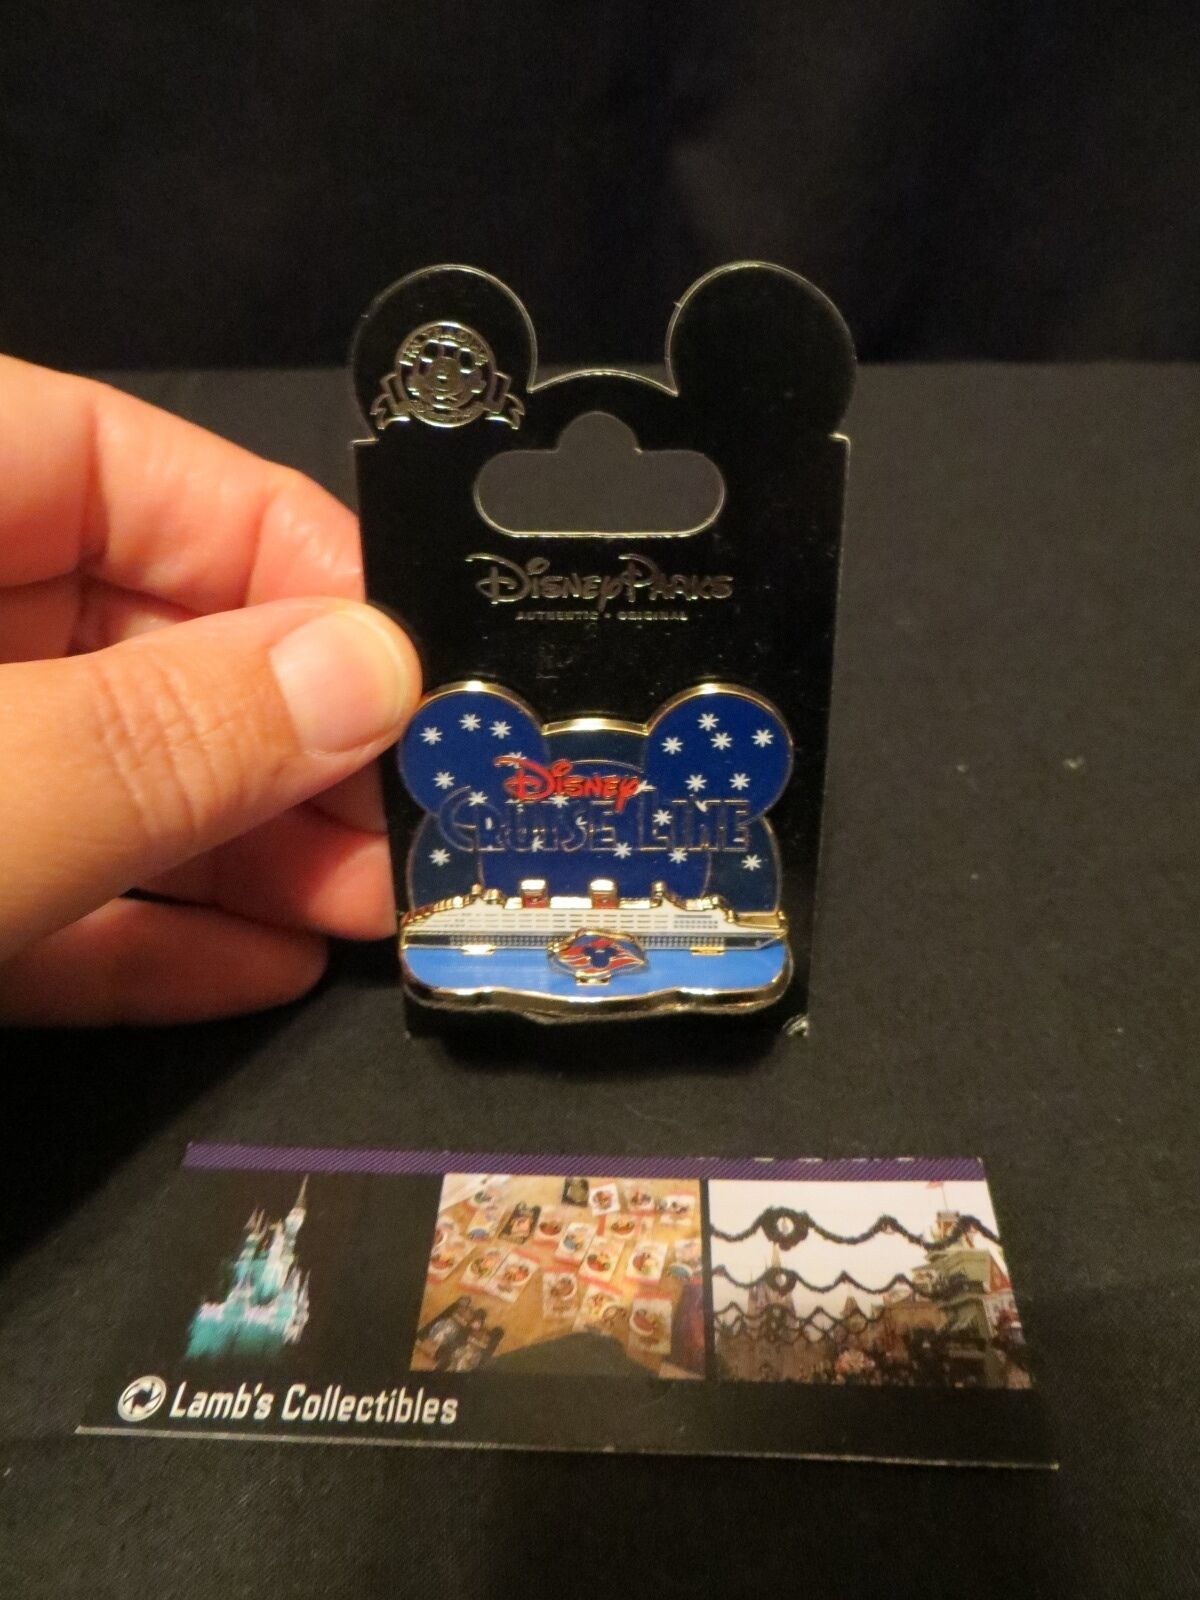 Primary image for Disney Pin DCL Cruise Line Ship Starry Night w/ Mickey Mouse Wave Logo Diorama